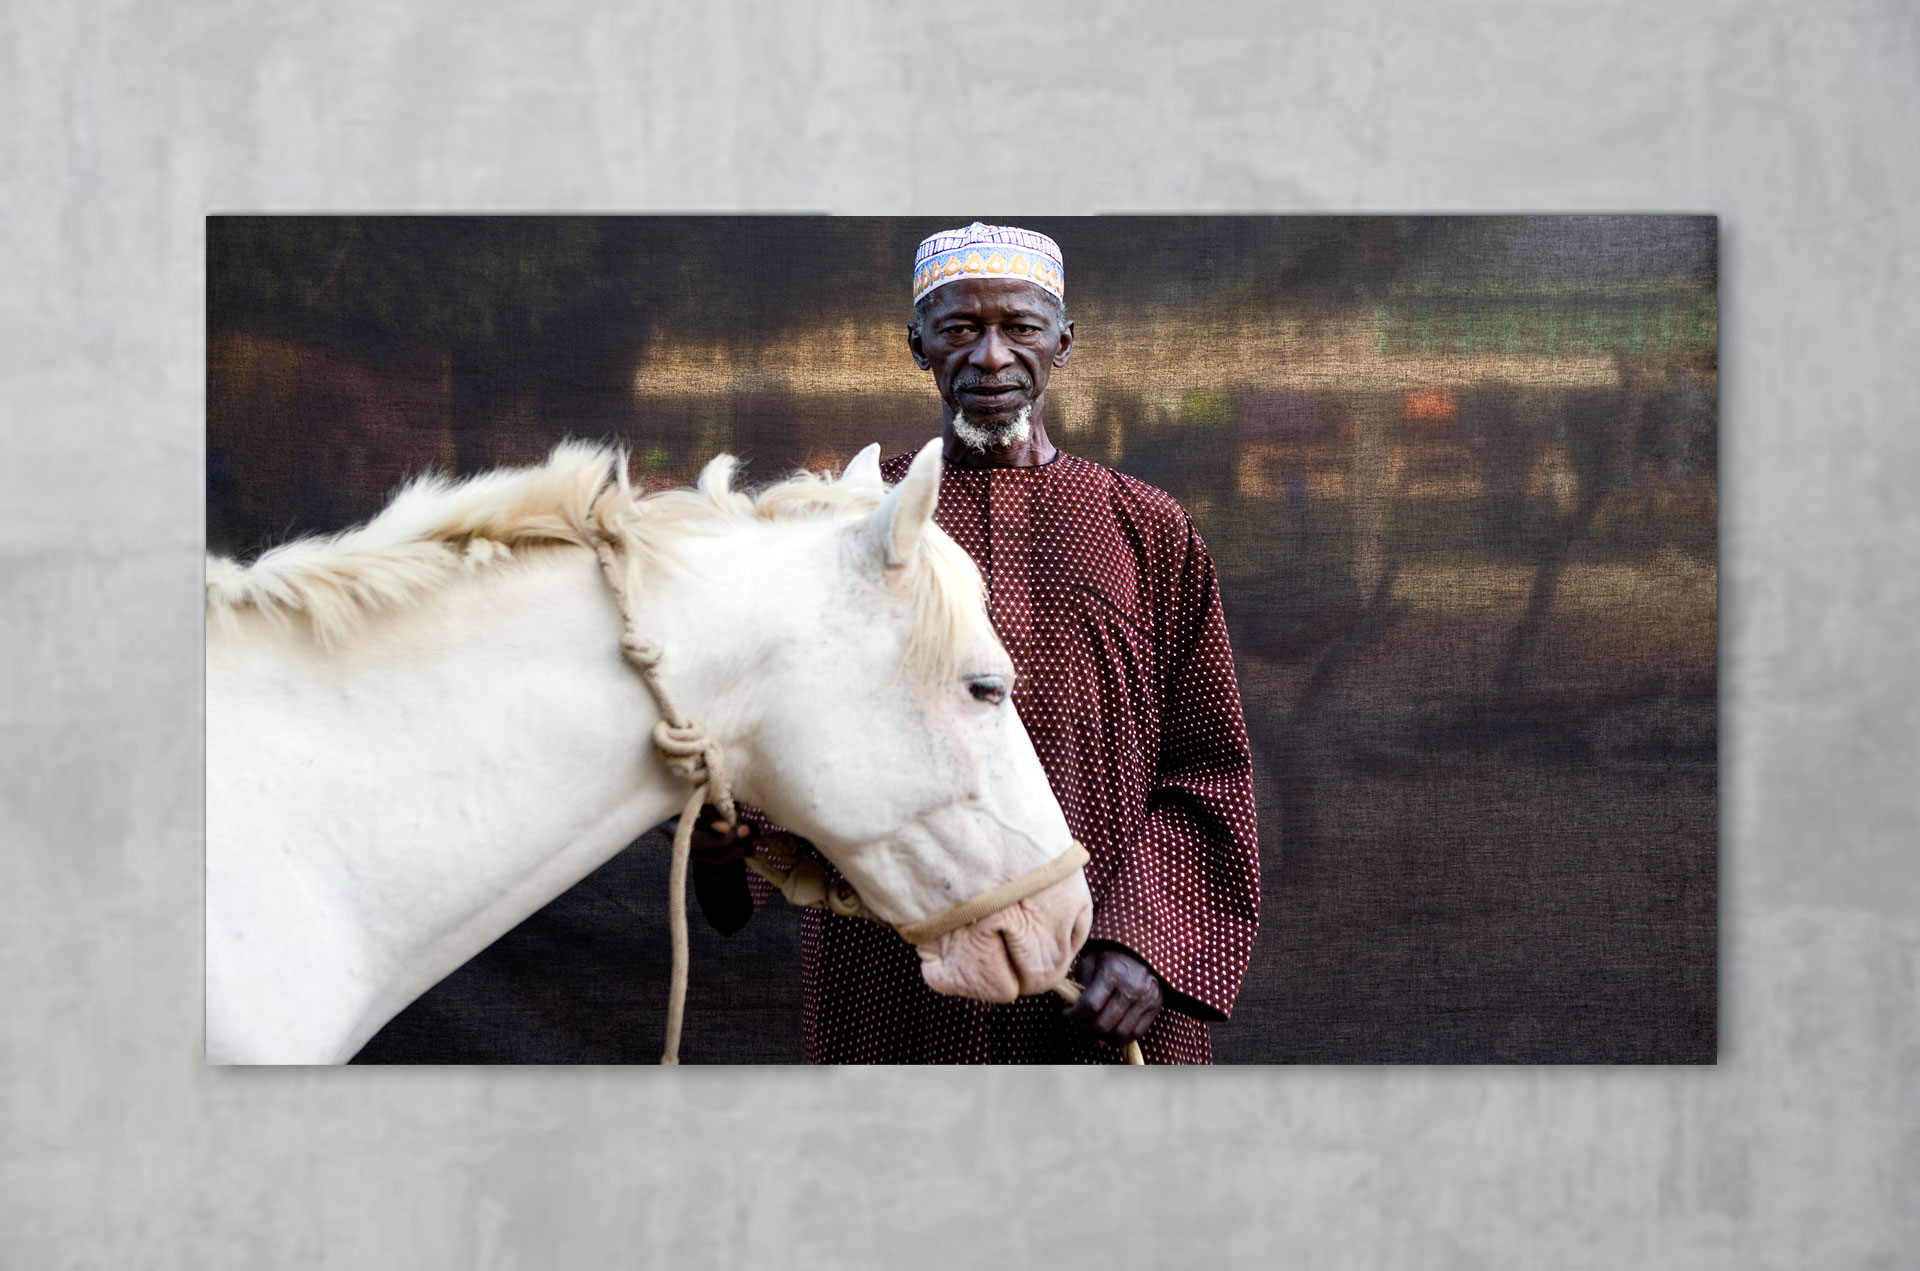 Portraits Gambian Village Chiefs & Elders - 'Herouna with his White Horse' ©Jason Florio - available to purchase from the HJF gallery